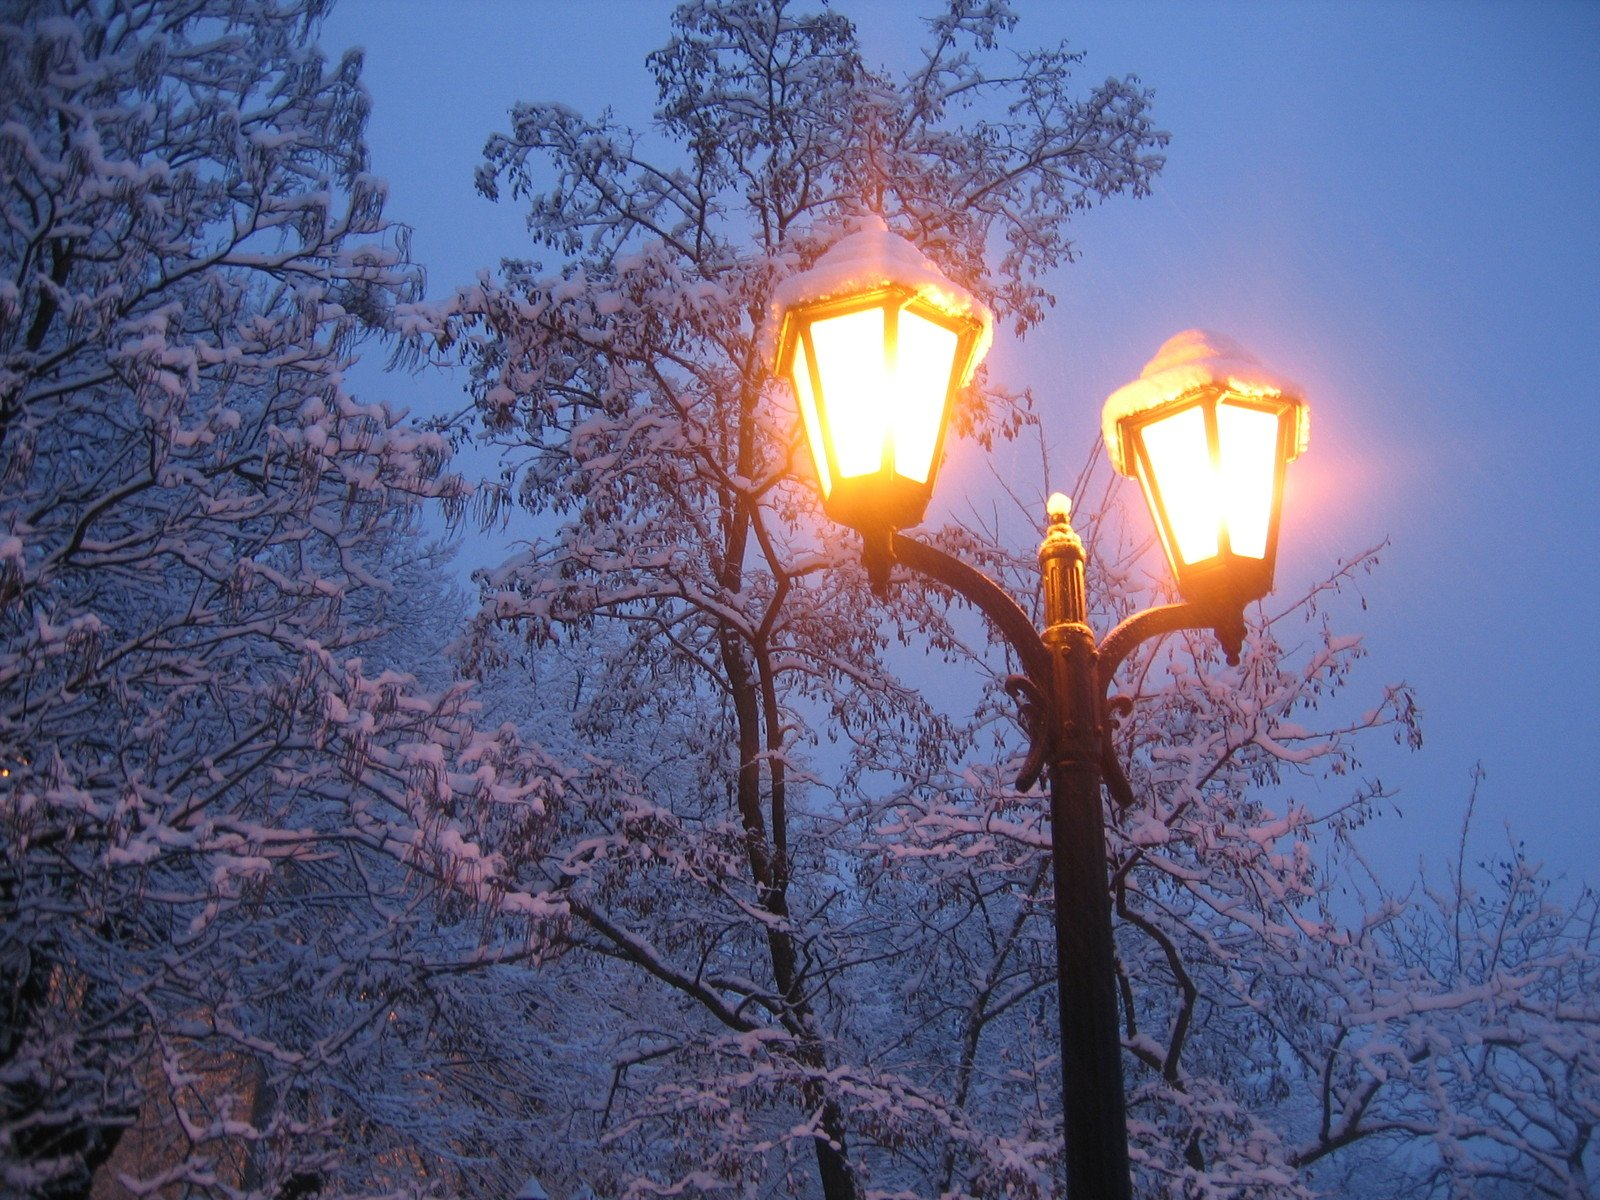 Lamps in winter